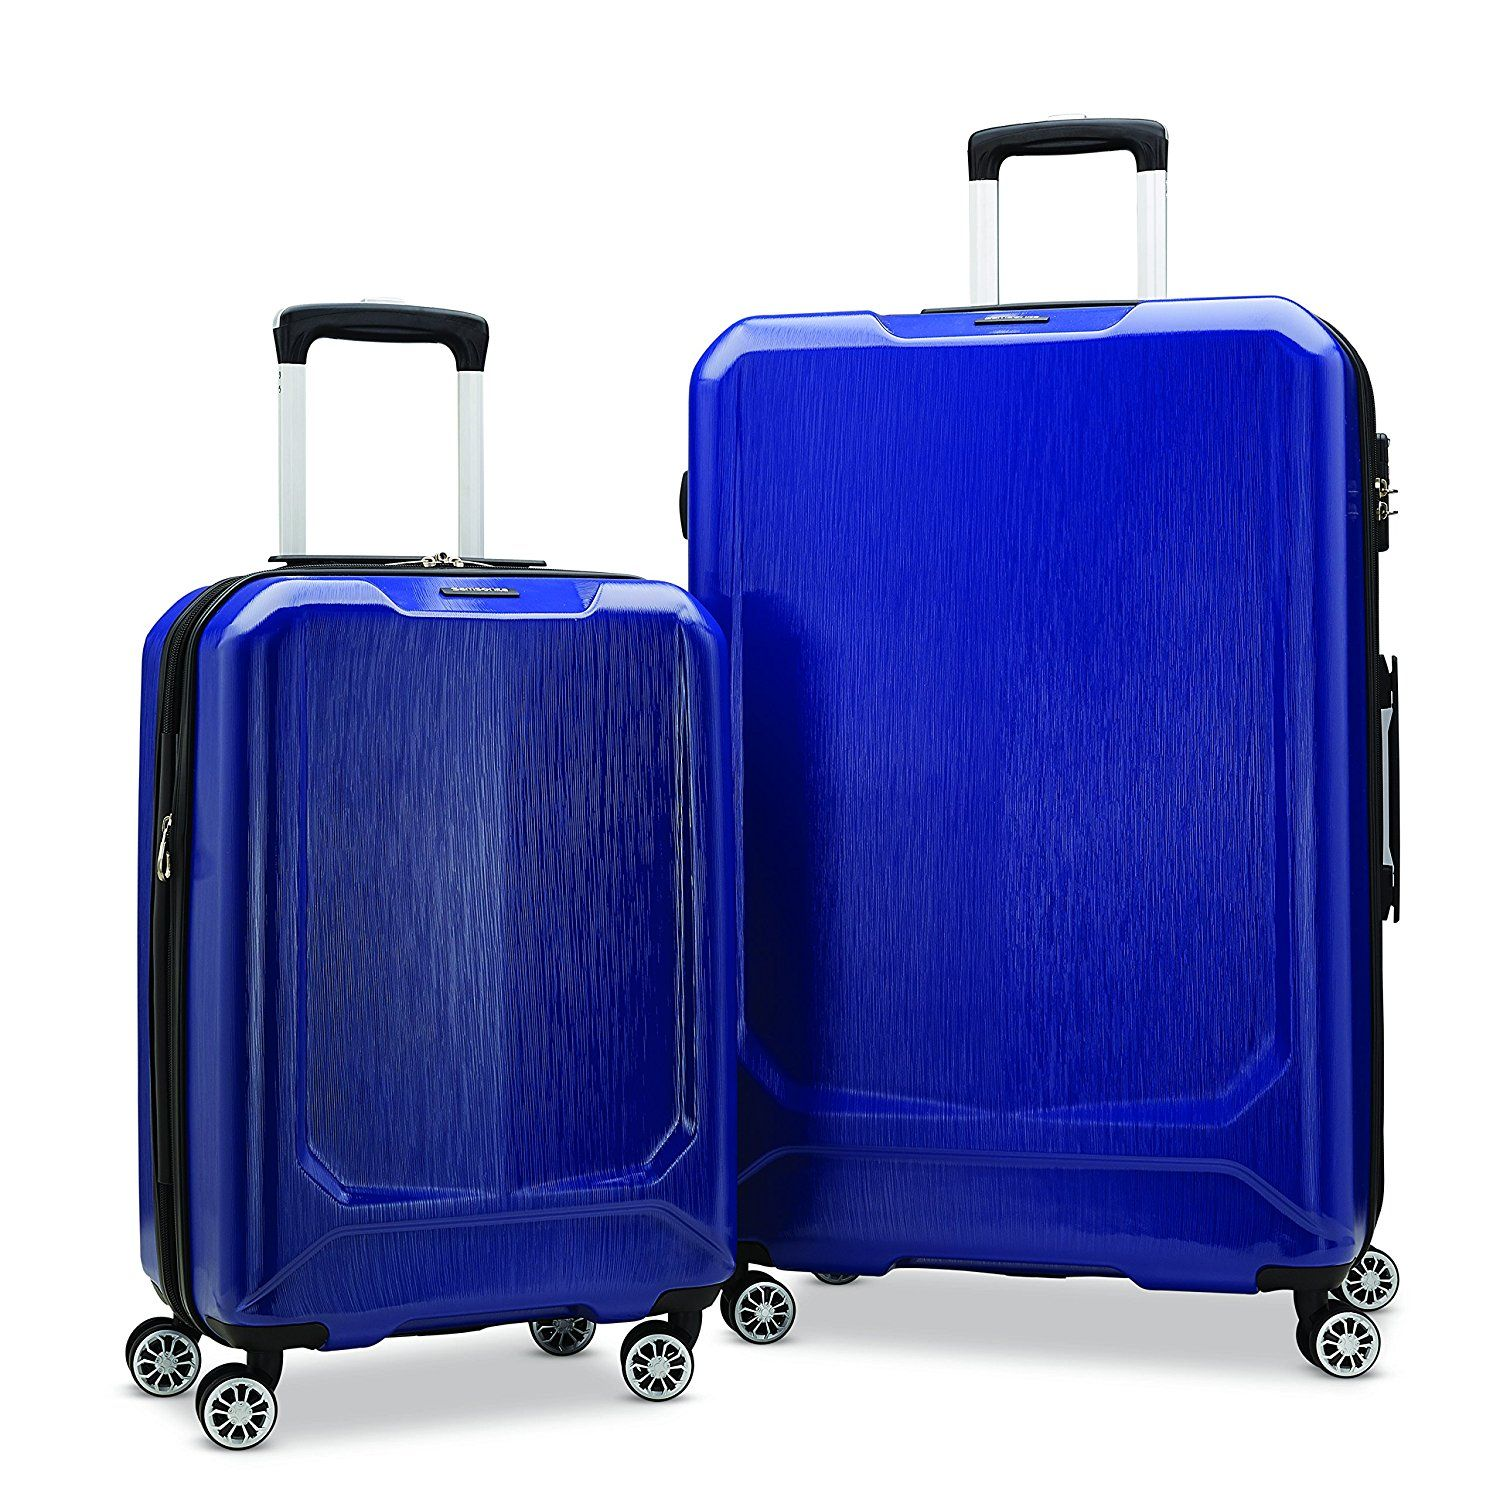 Samsonite Duraflex Lightweight Hardside Set 20 28 Only At Amazon See This Great Product This Is An Amaz Samsonite Luggage Samsonite Carry On Luggage